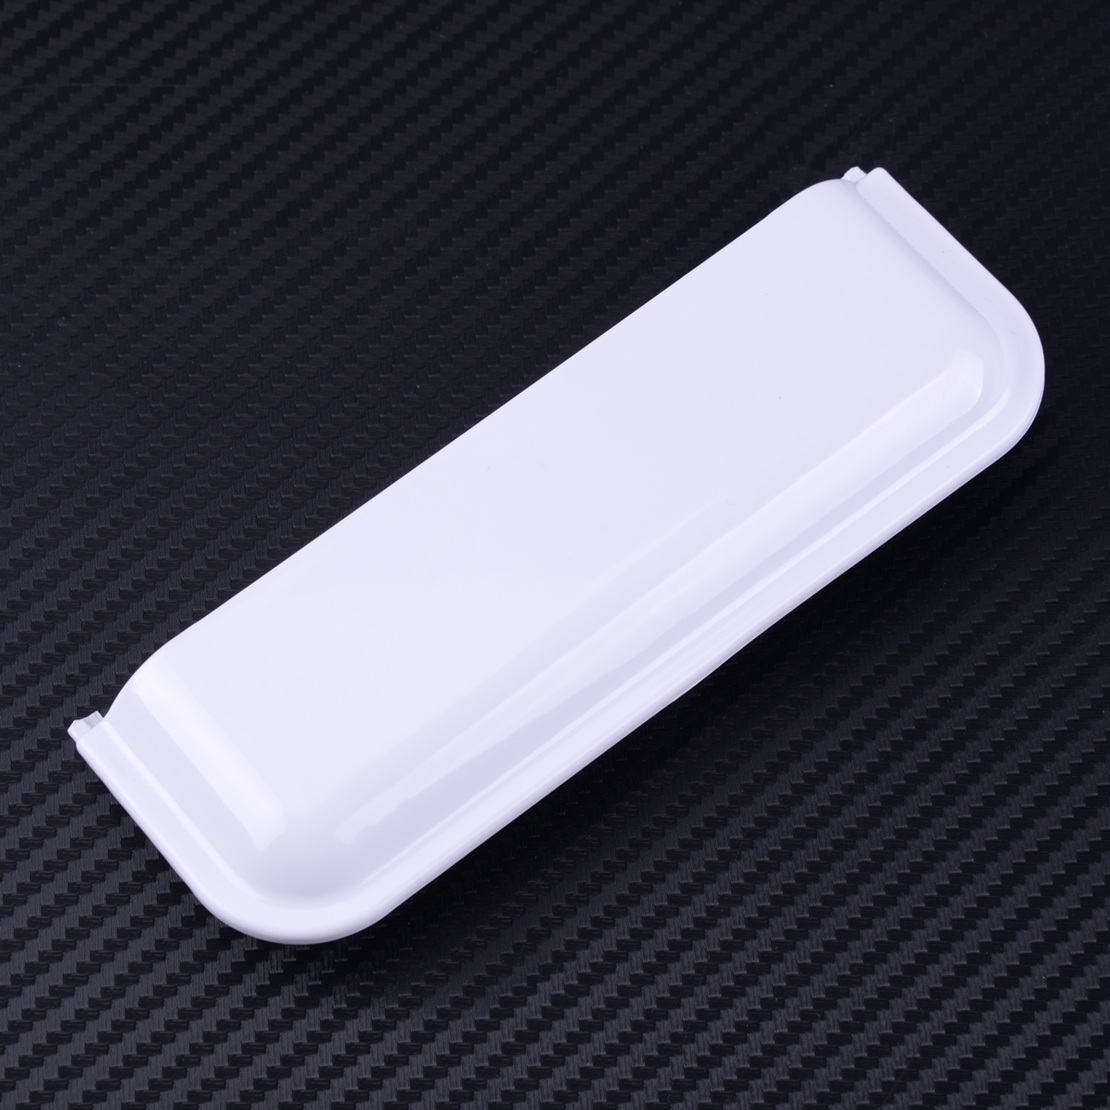 LETAOSK White Replacement Door Handle Plastic 14.5x5cm W10861225 W10714516 AP5999398 PS11731583 Fit For Whirlpool Dryer